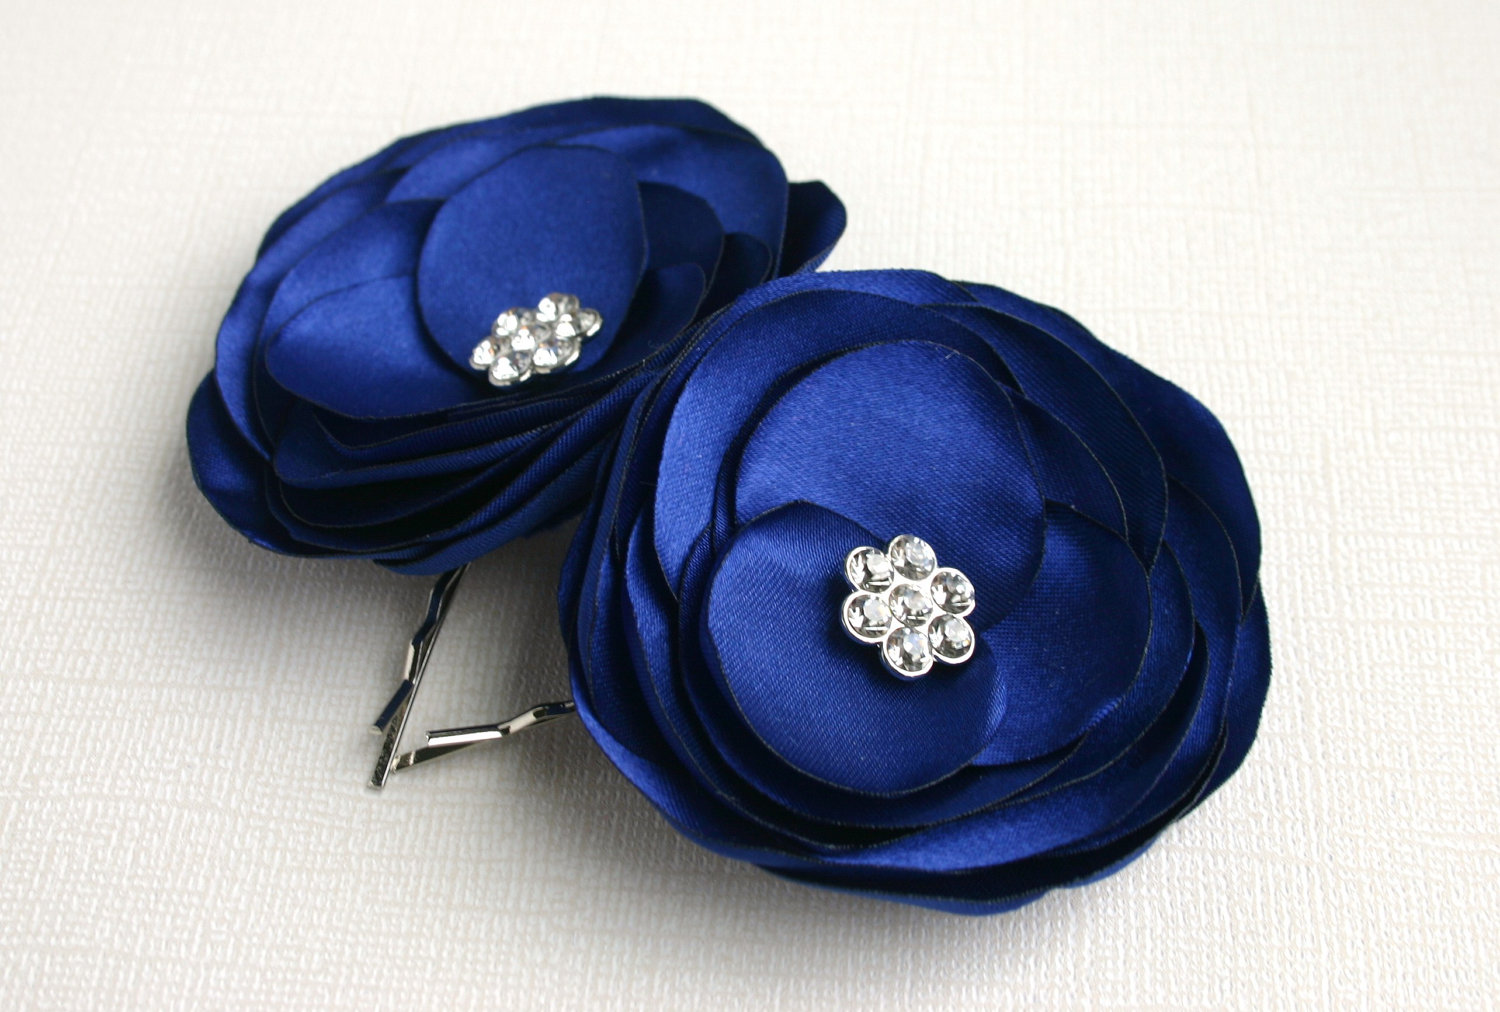 blue flower hair clips for wedding navy blue by sarasboutique 14 00